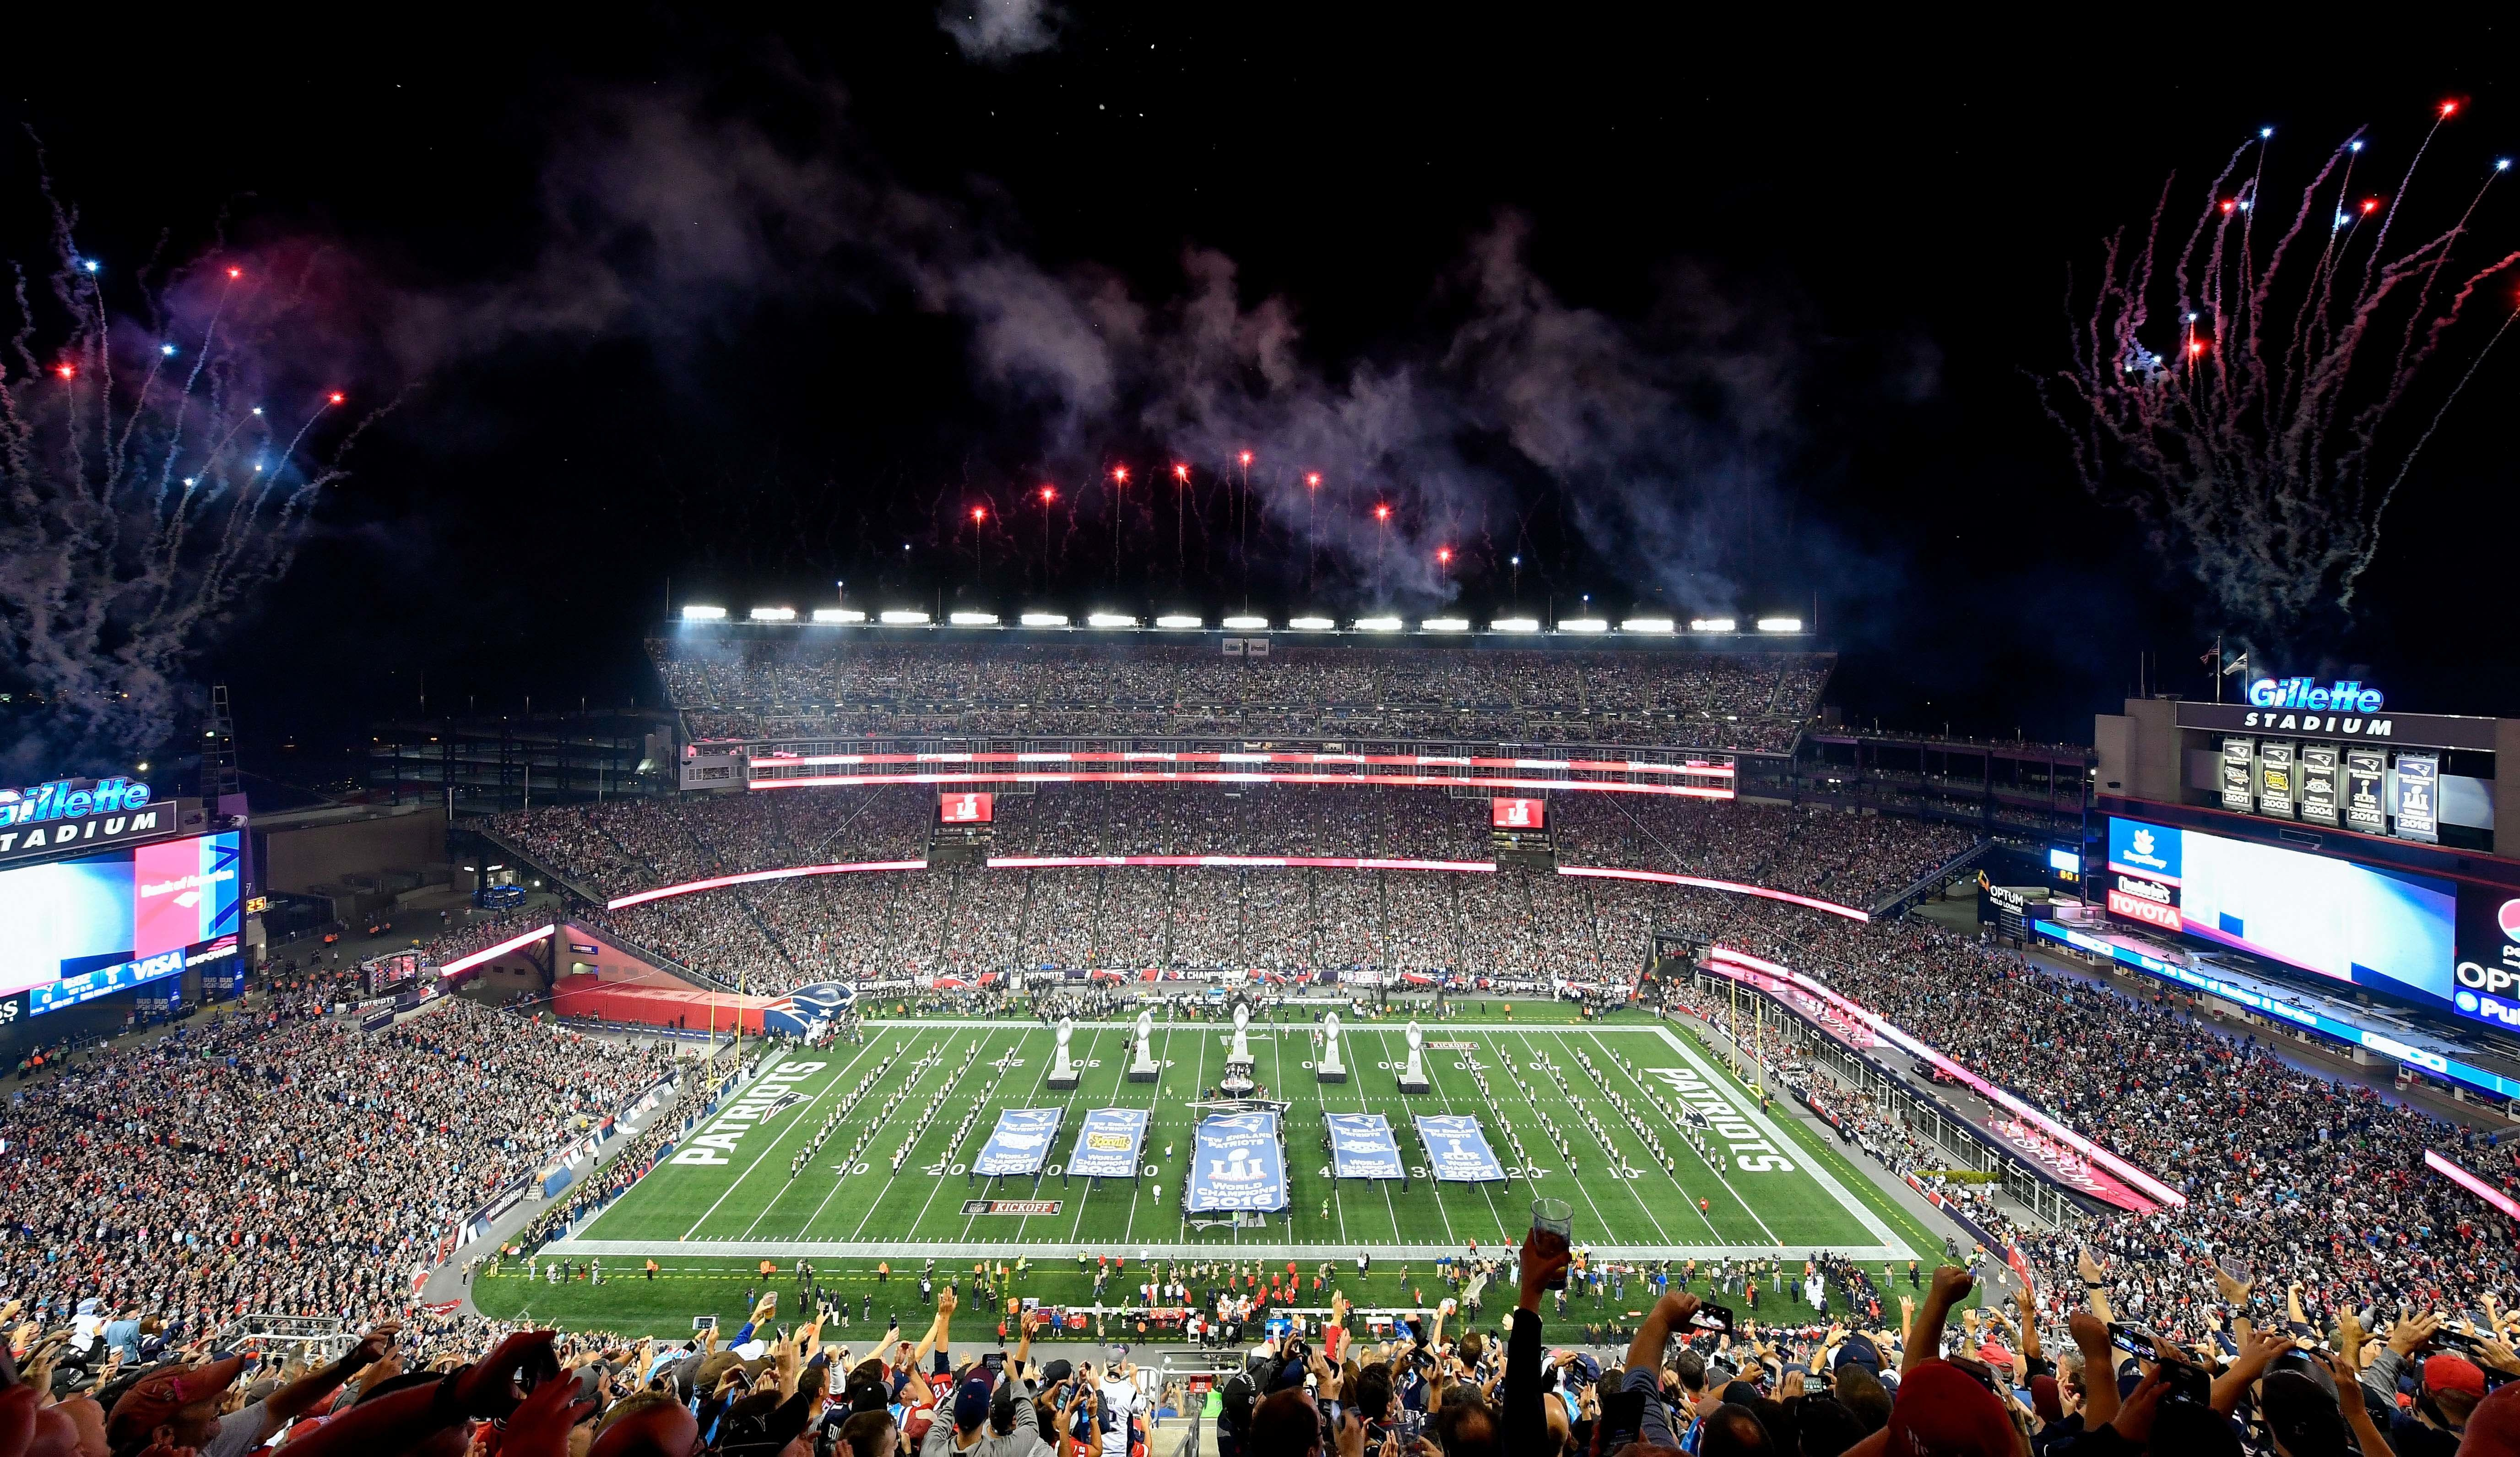 Sep 7, 2017; Foxborough, MA, USA; A general view of Gillette Stadium as the New England Patriots unveil the 2017 Super Bowl Banner before a game against the Kansas City Chiefs. Mandatory Credit: Brian Fluharty-USA TODAY Sports